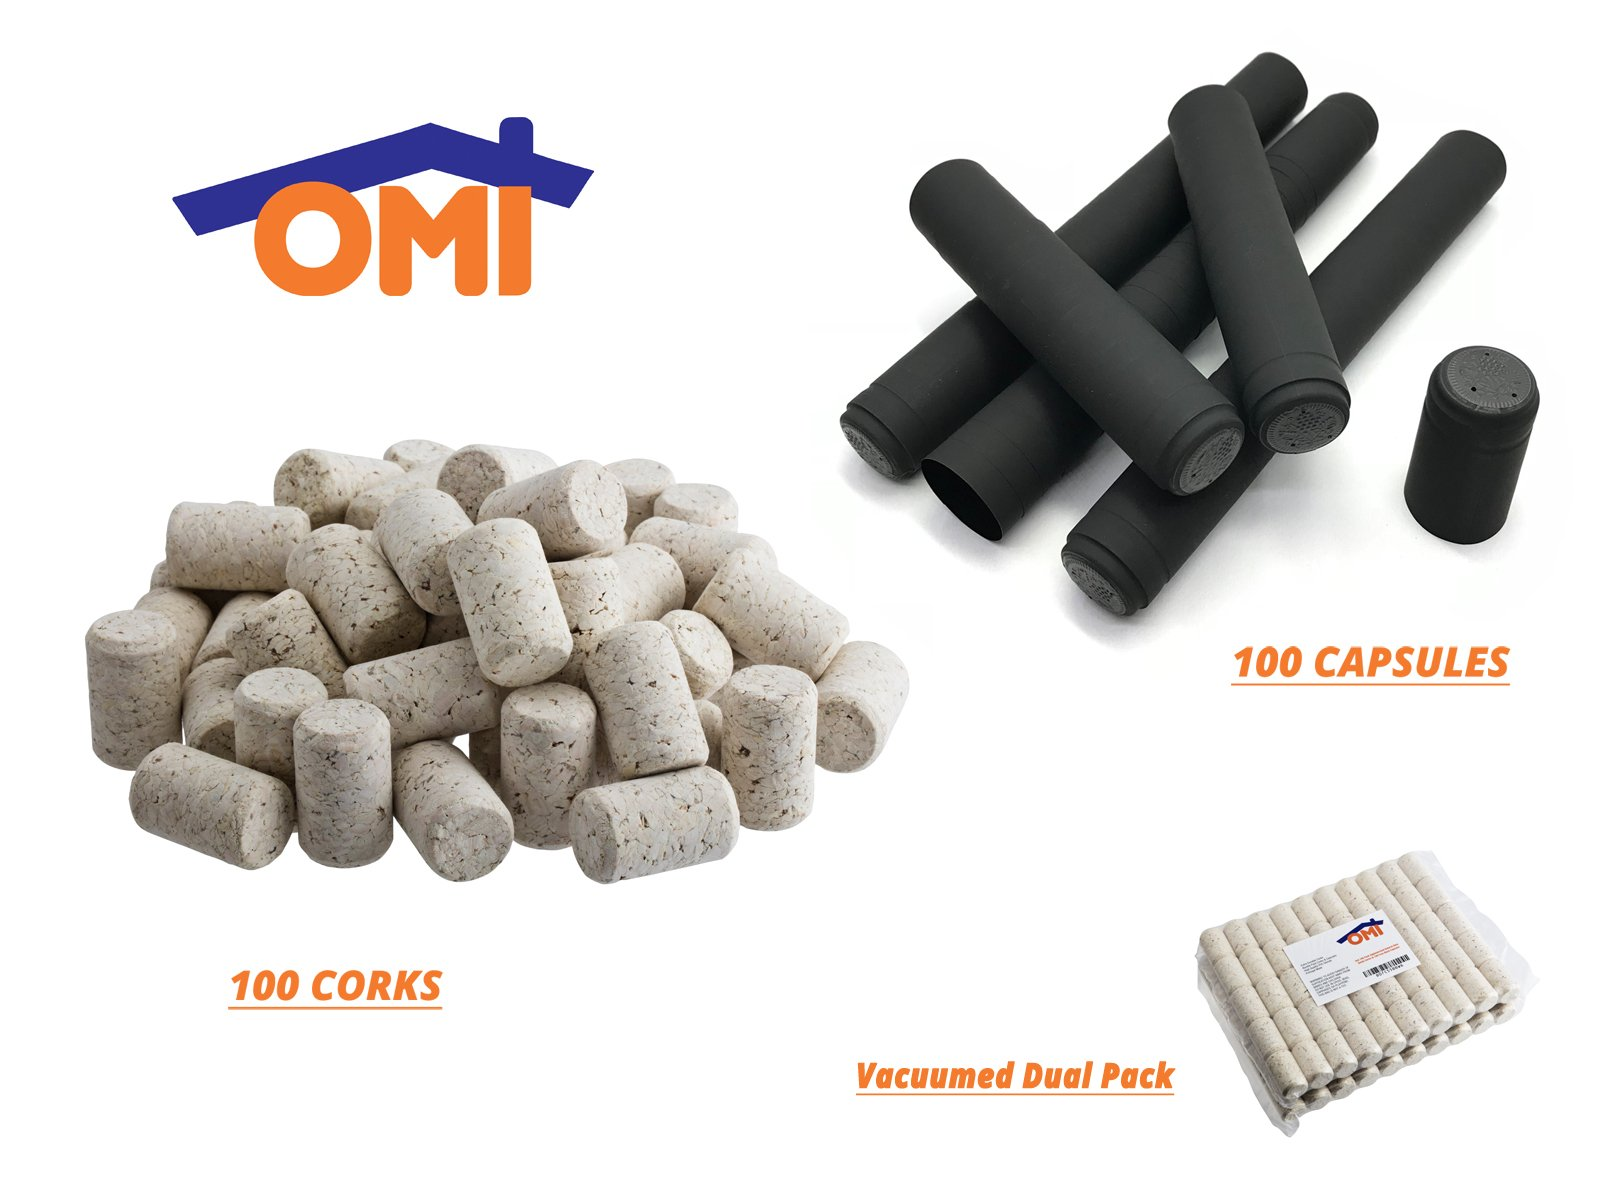 Omi 100 Pack Agglomerated Natural Wine Bottle Corks & Black Capsules - #9 Portugal Made 100 Wine Bottle Shrink Capsules Homemade Craft by Omi Home (Image #1)